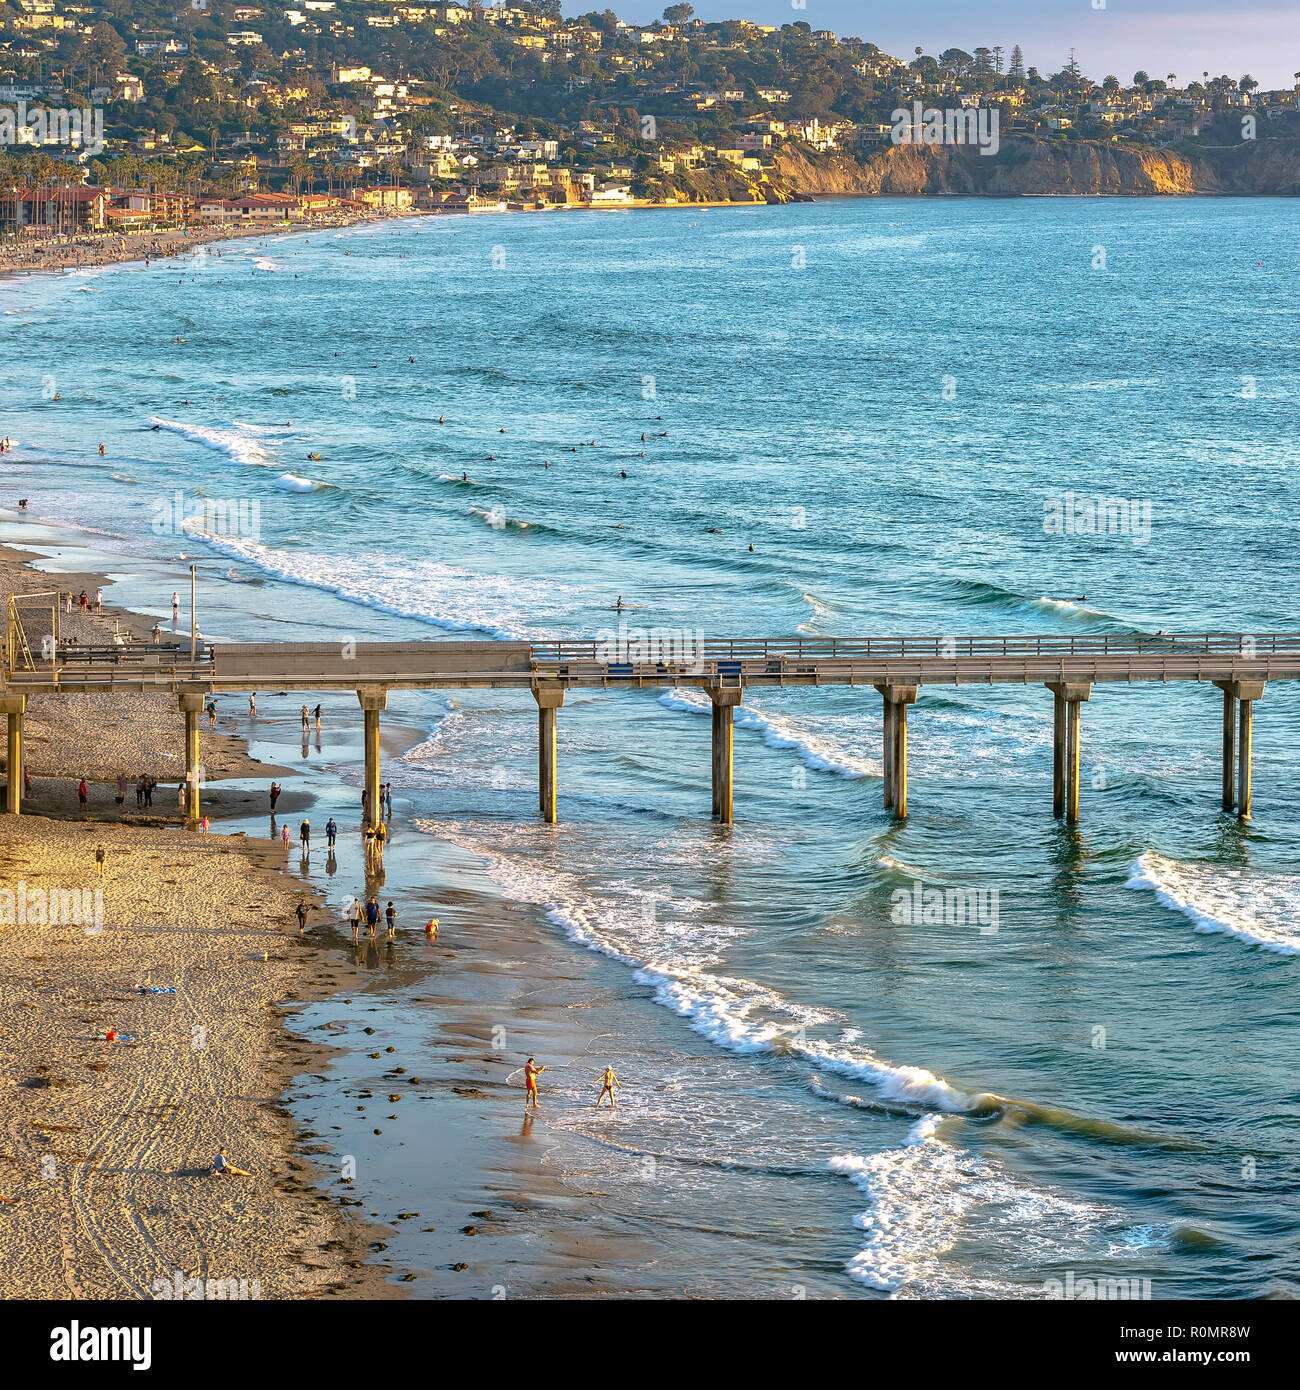 Scripps Pier and coastal houses in San Diego CA - Stock Image